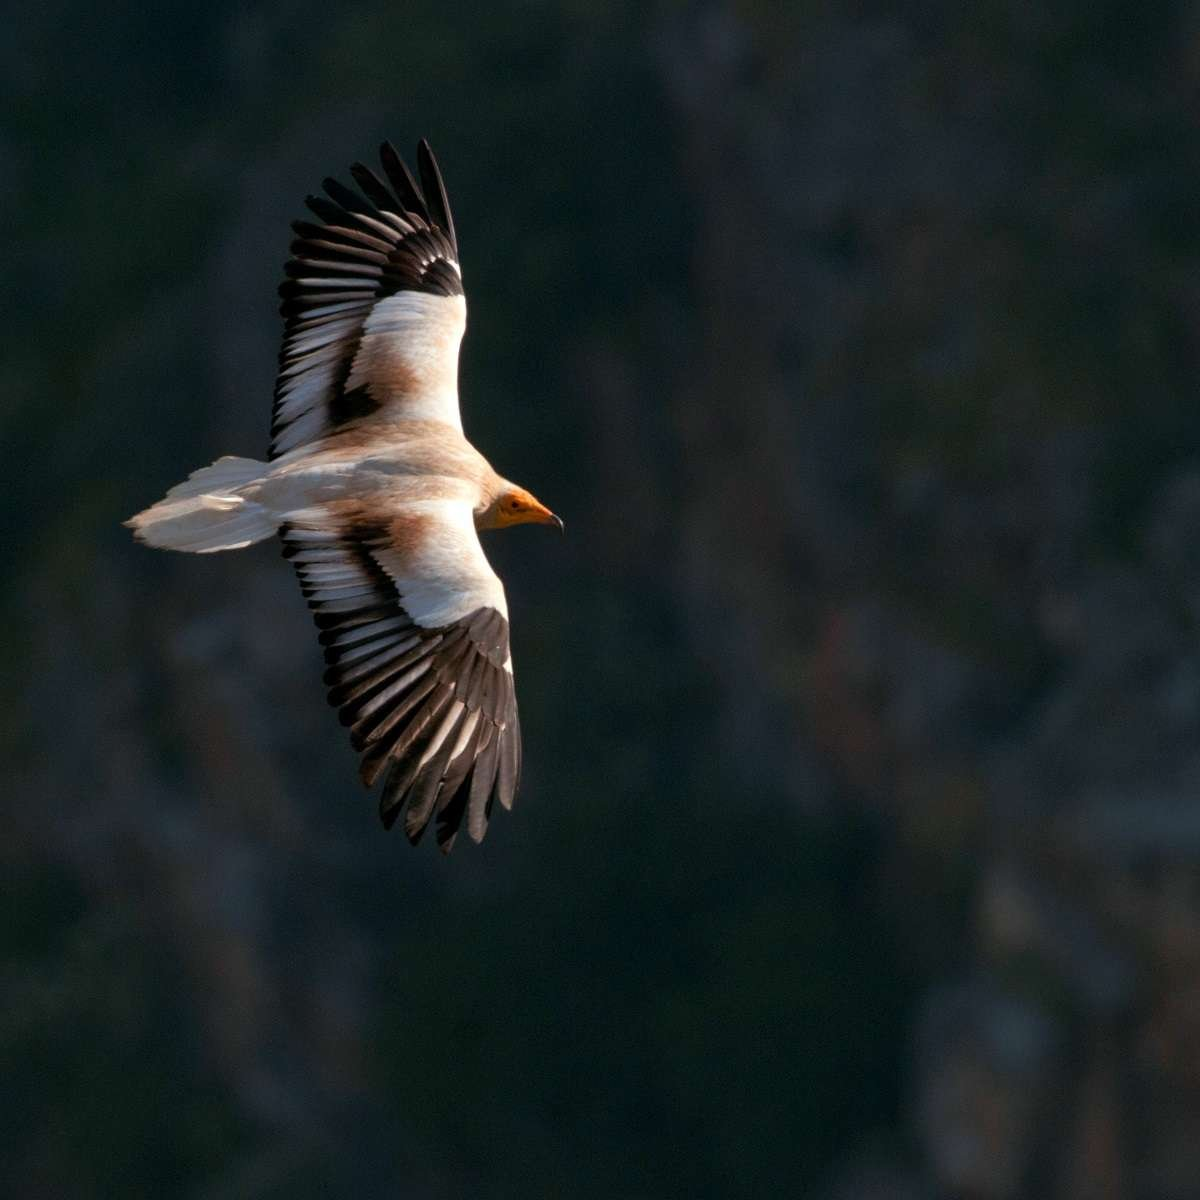 an egyptian vulture flying over a burnt area